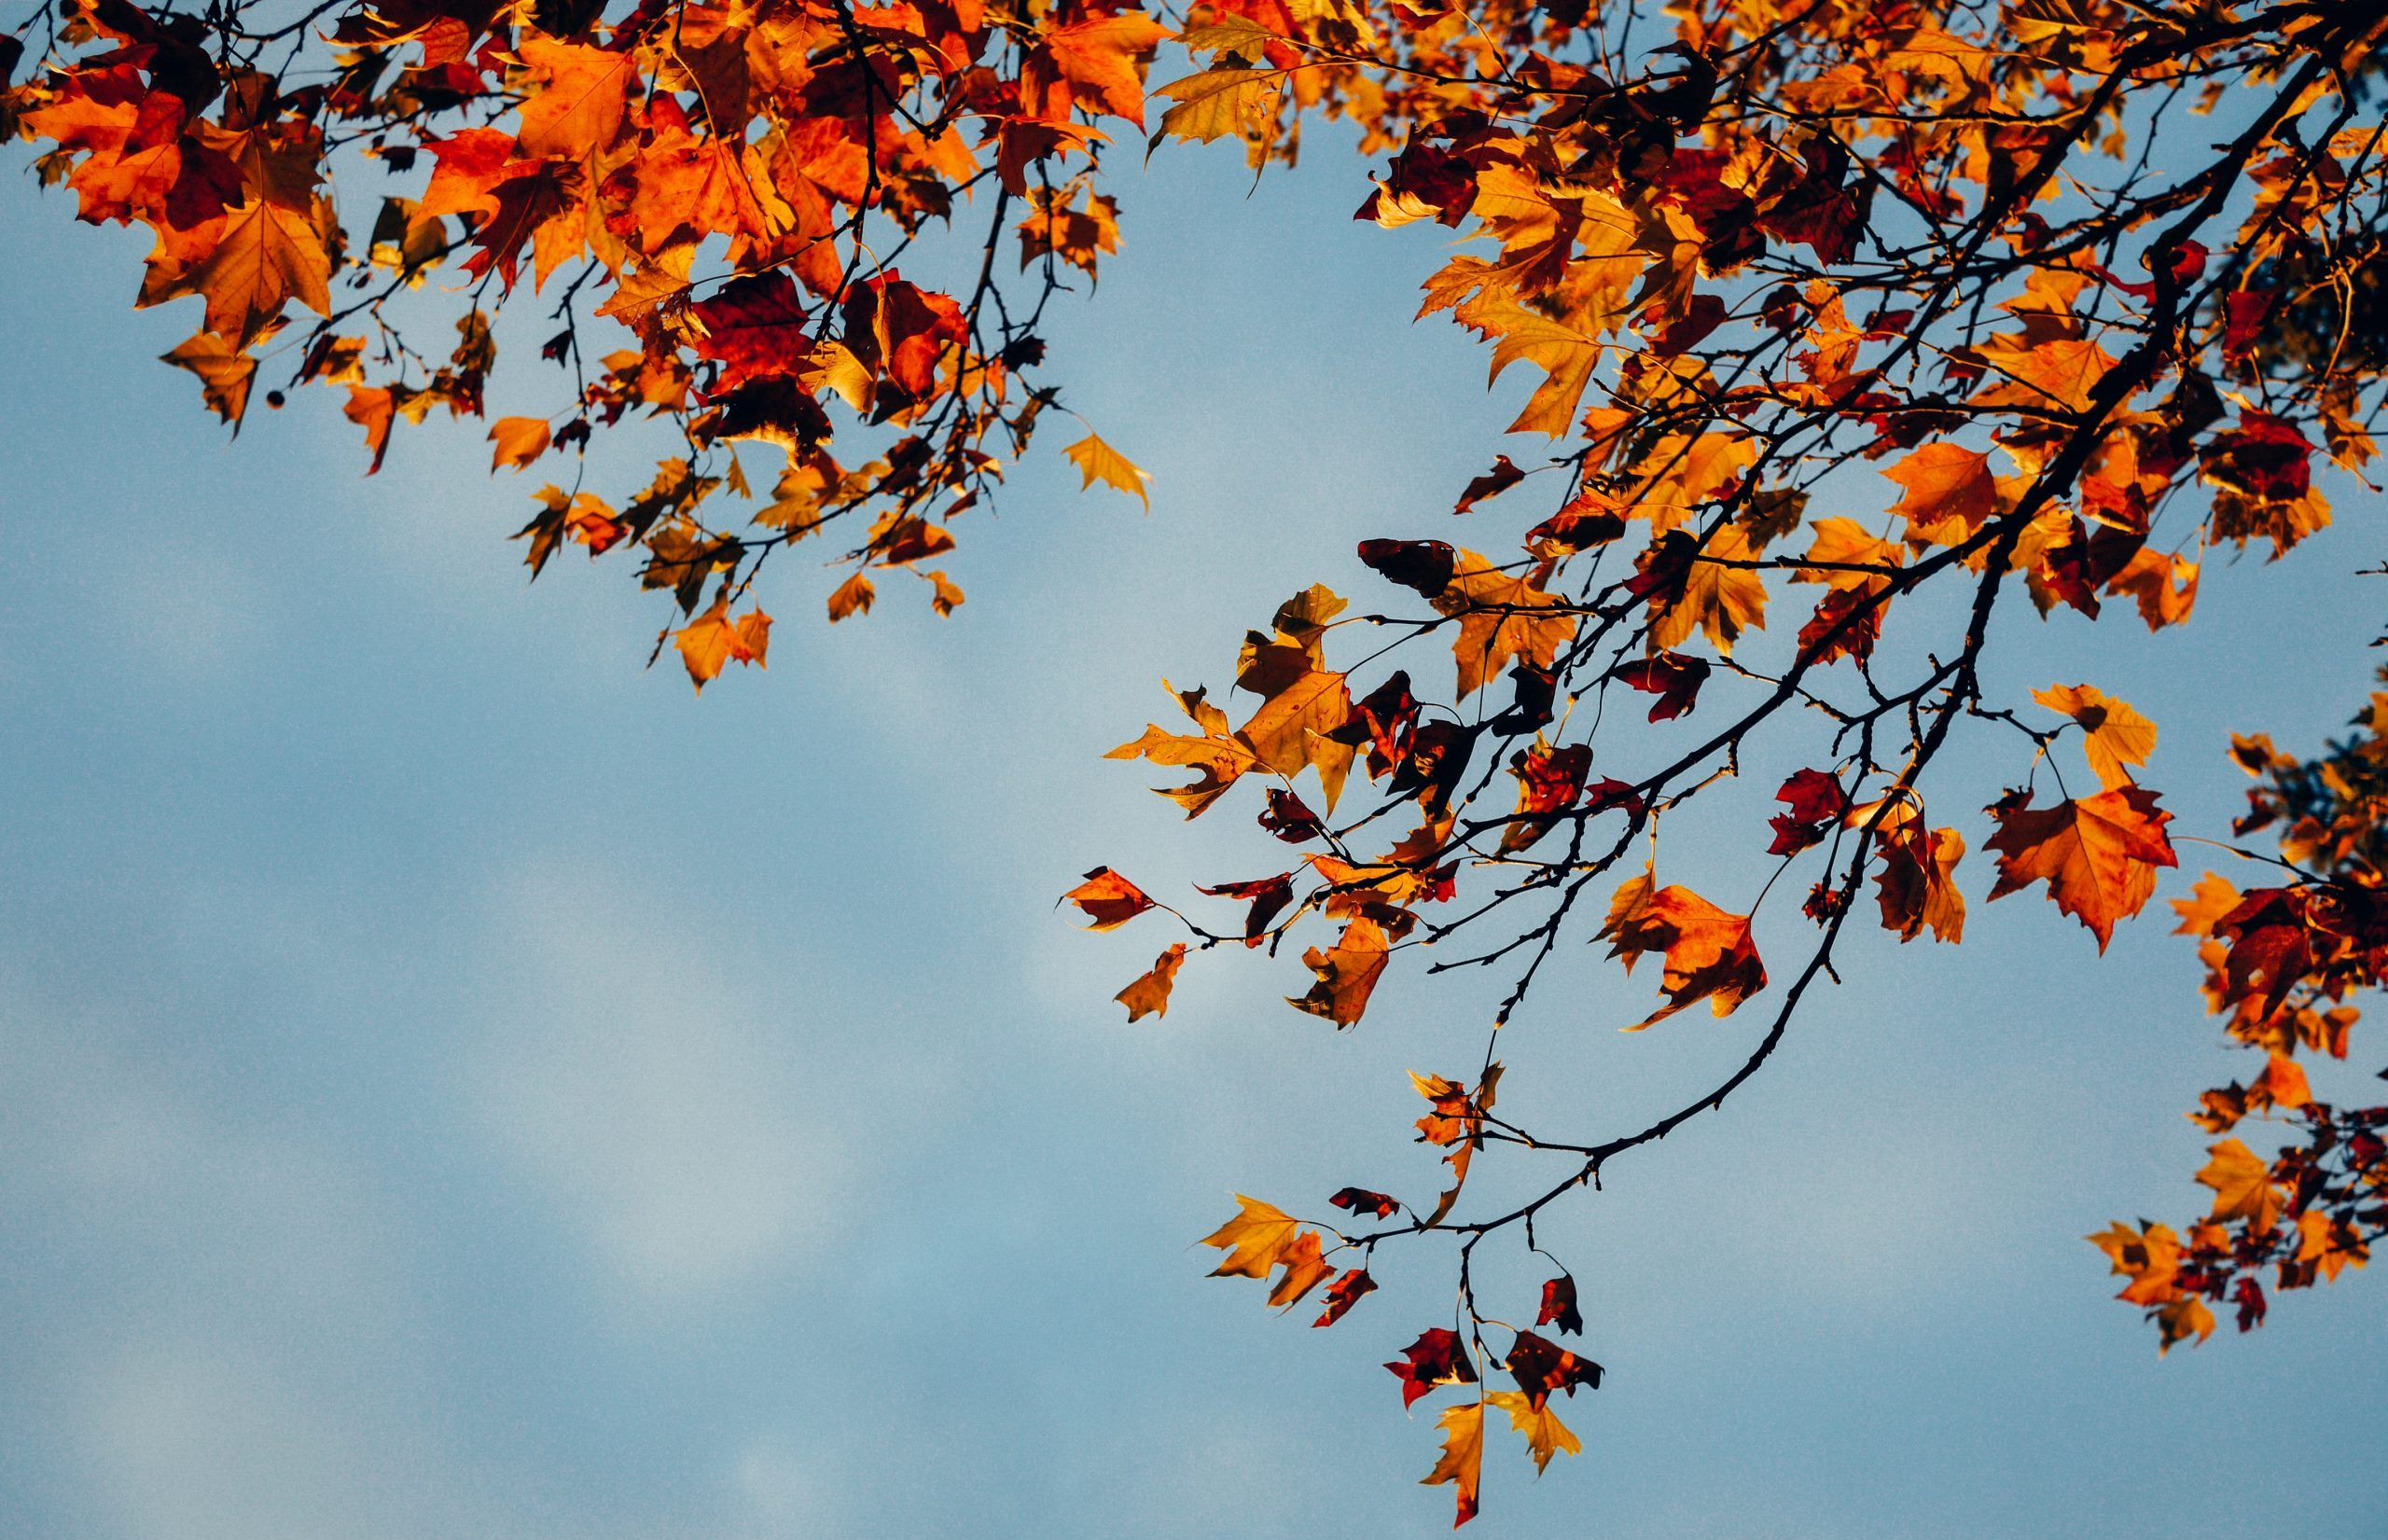 Photo of fall leaves against blue sky